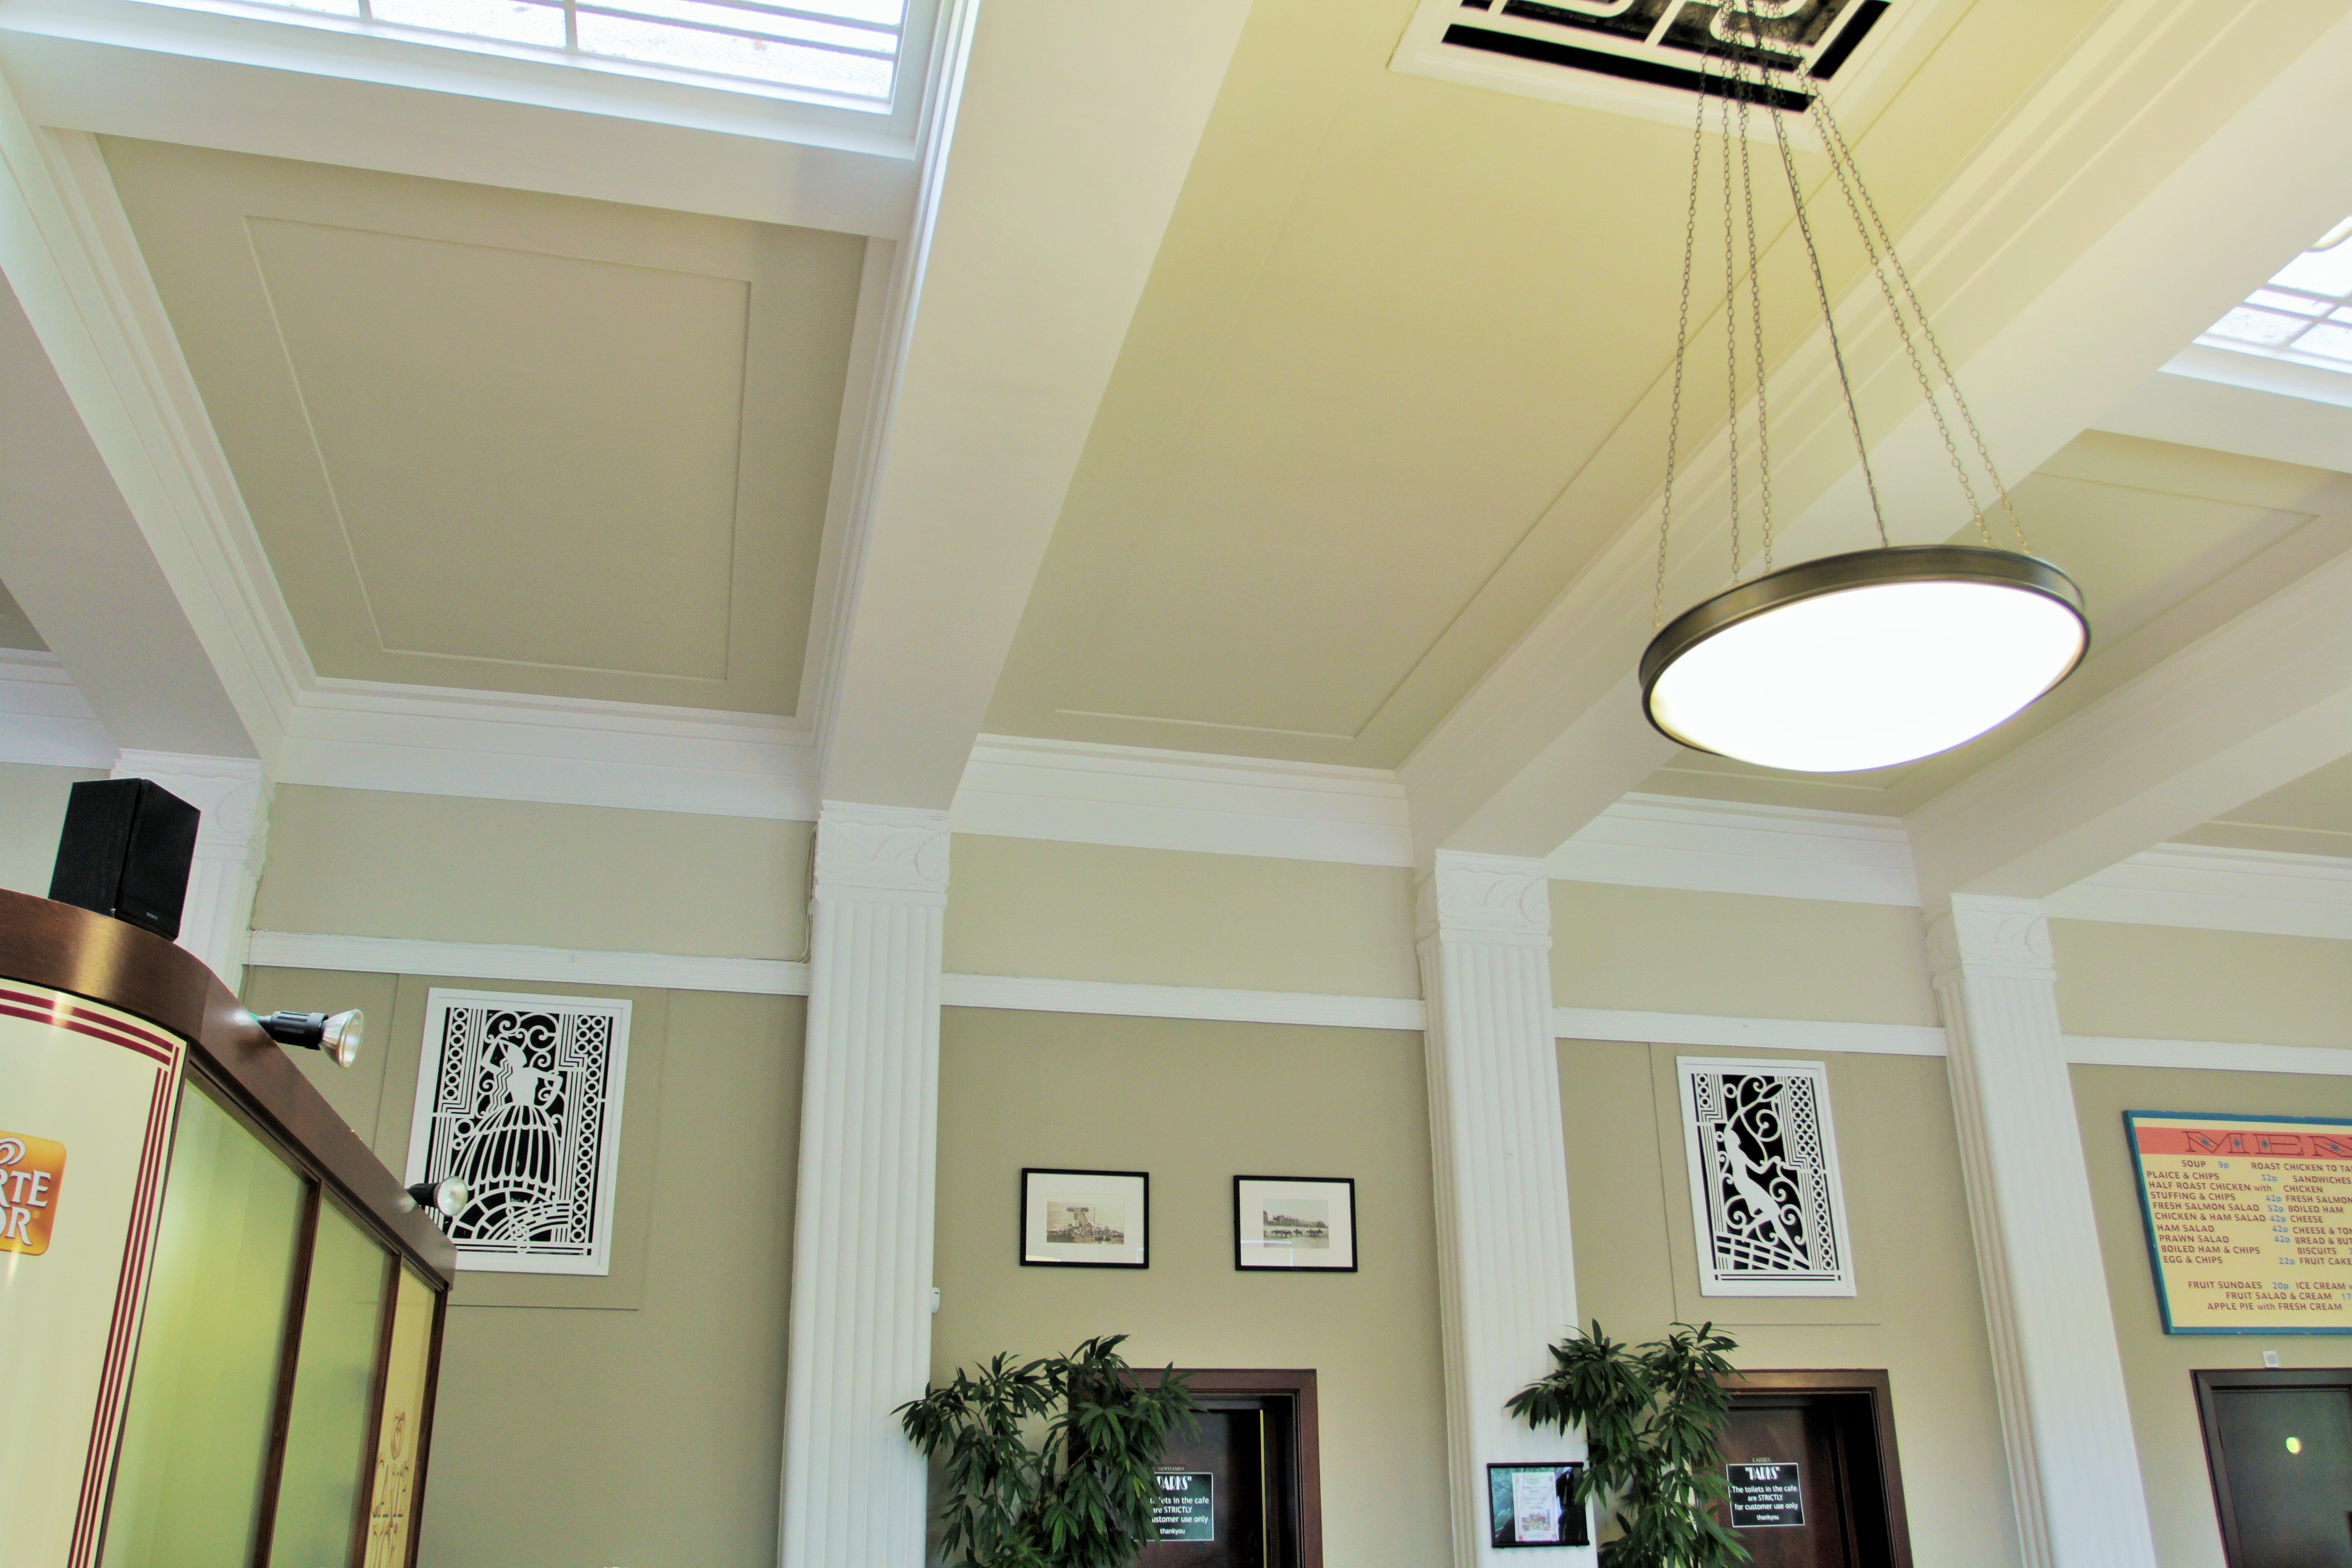 Ceiling Lights Blackpool : Stanley park cafe local studies library blackpool